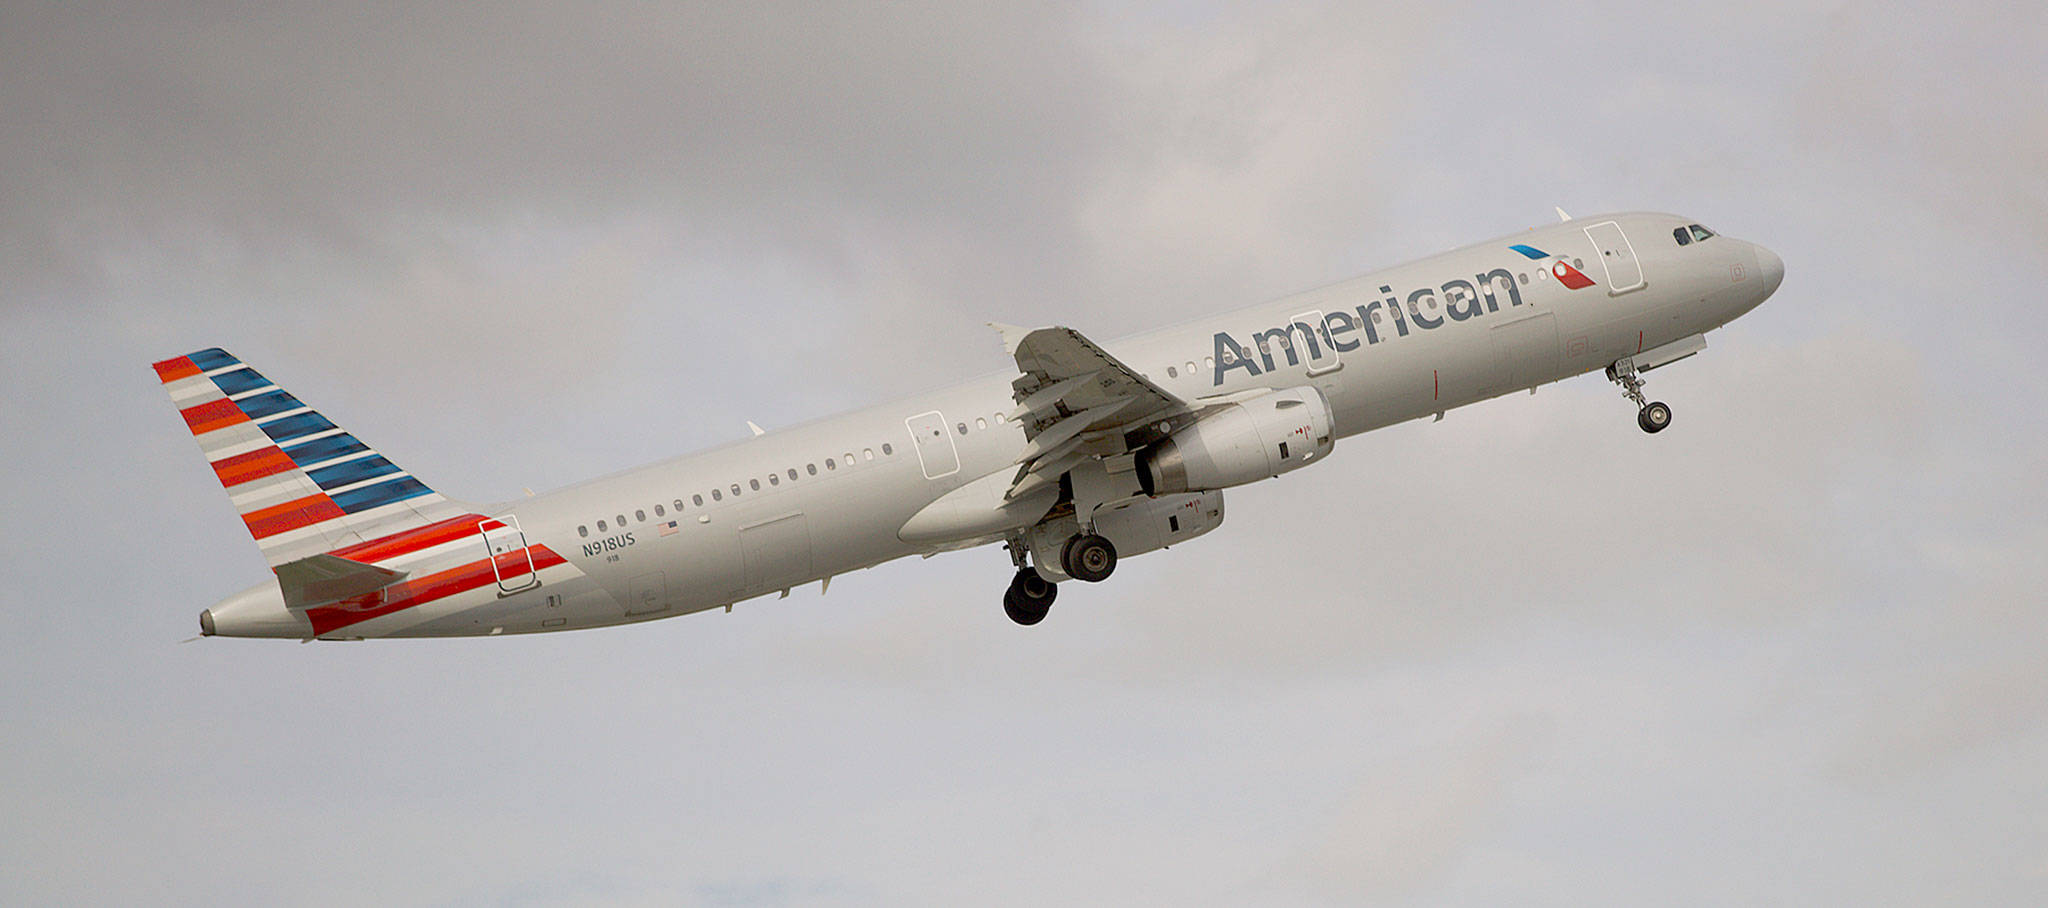 An American Airlines Airbus A321 takes off from Fort Lauderdale–Hollywood International Airport in Fort Lauderdale, Florida. (AP Photo/Wilfredo Lee)